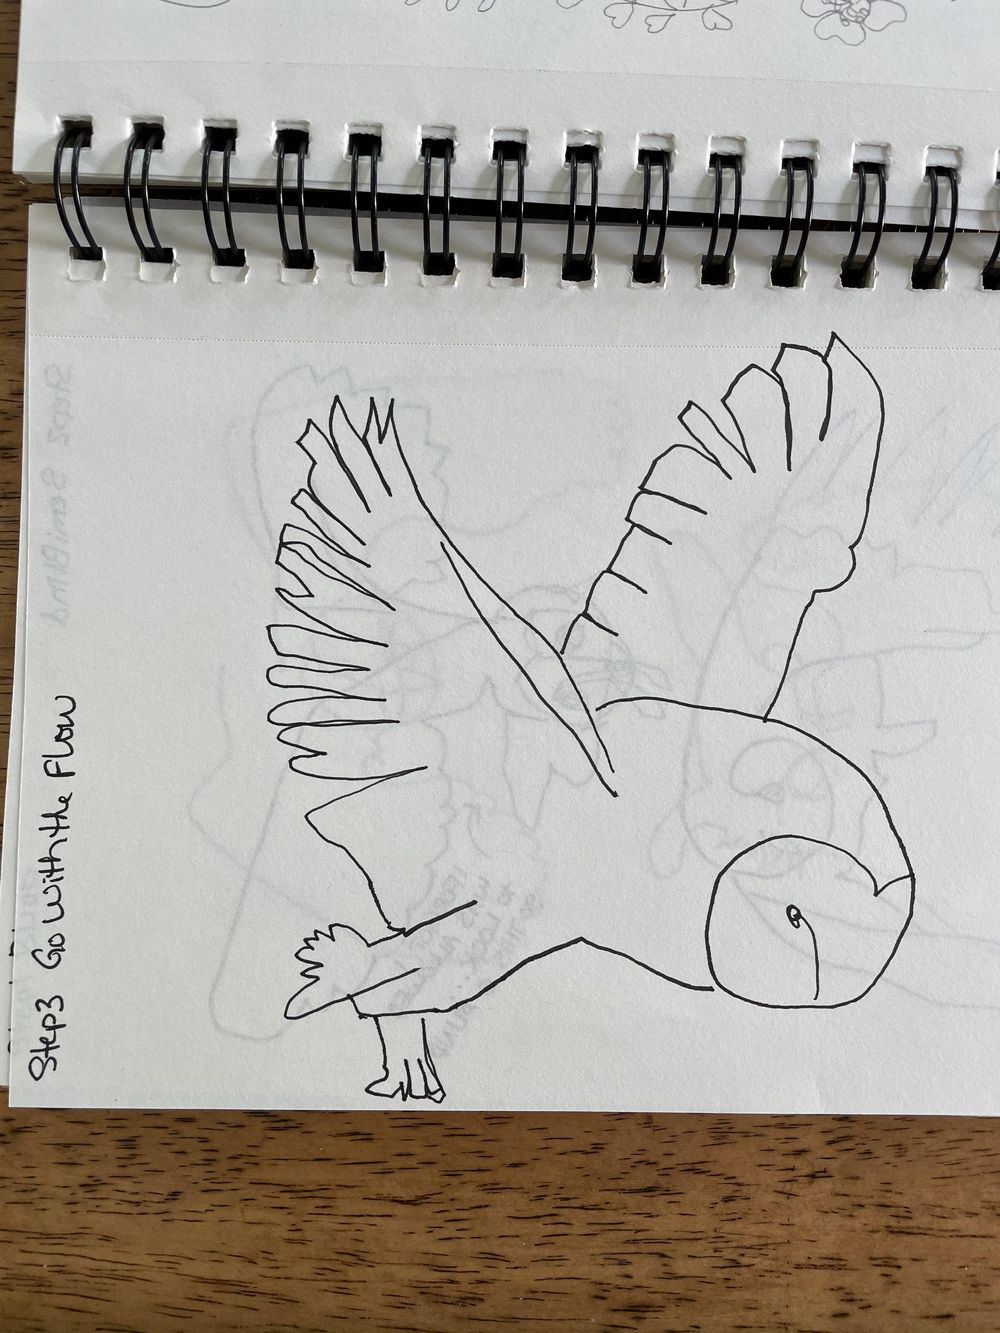 Line drawing practice - image 15 - student project